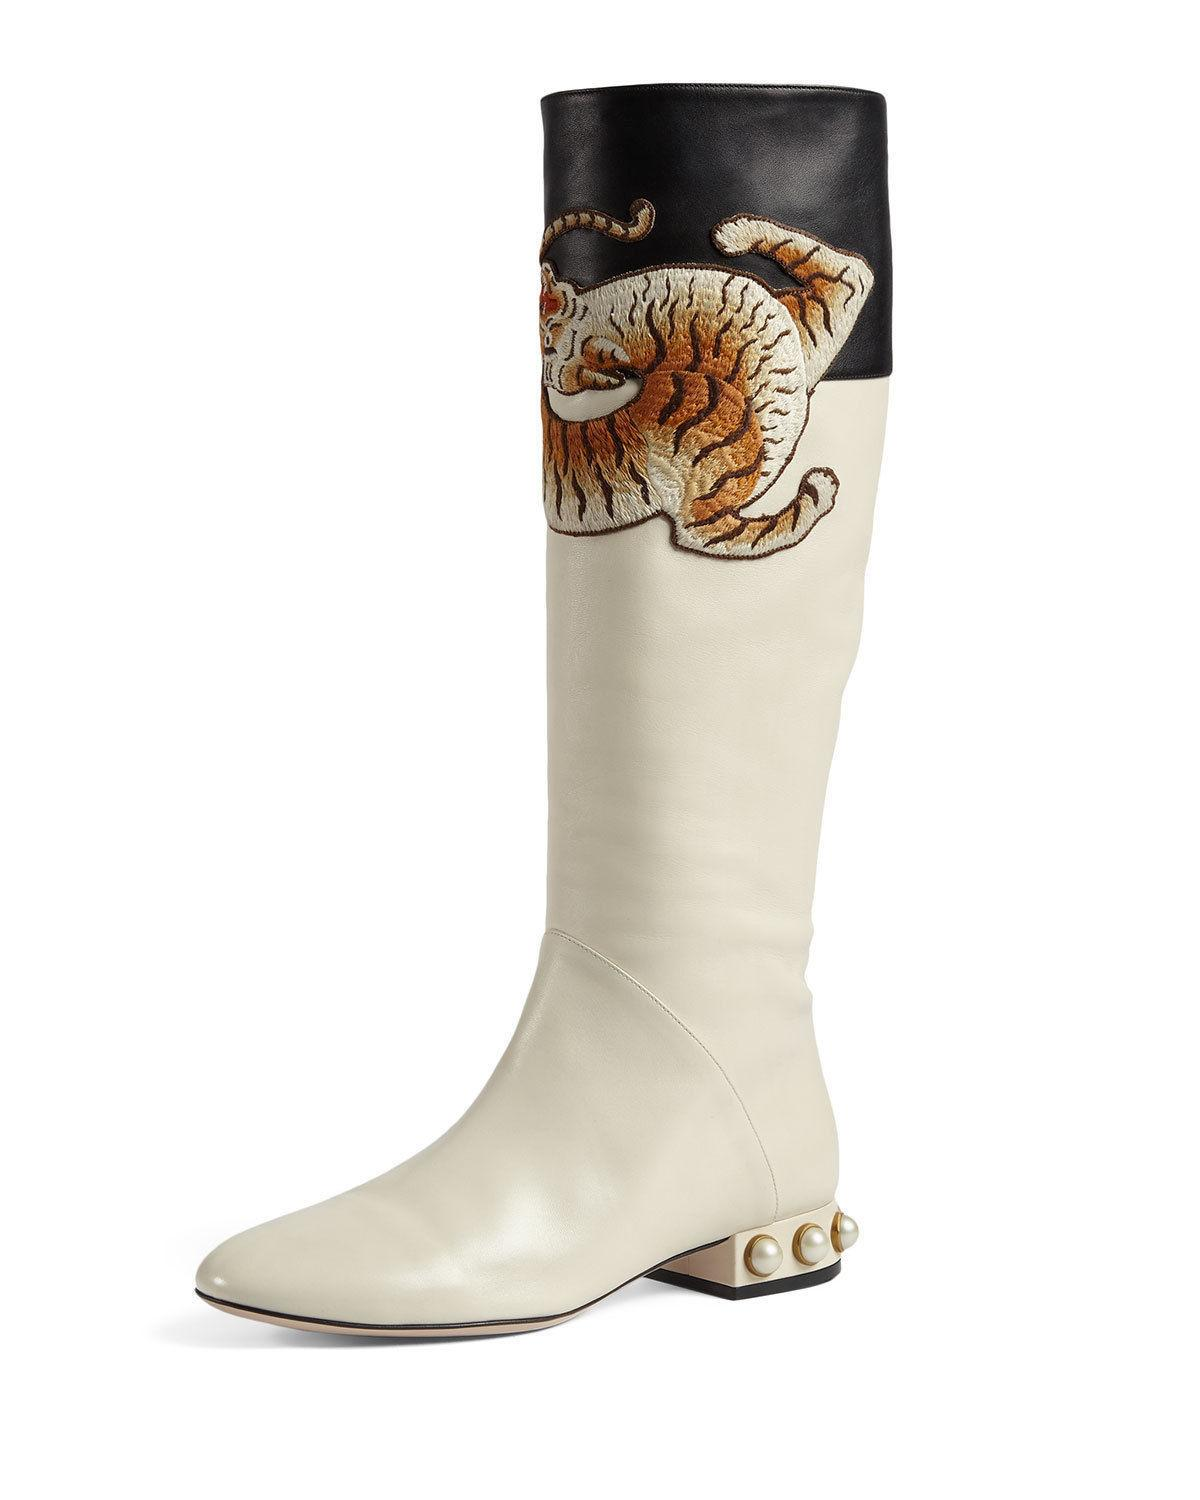 $2370 Gucci Pam Tiger Embroidered Tall Knee Boots Pearls Heel Booties 36 Ivory